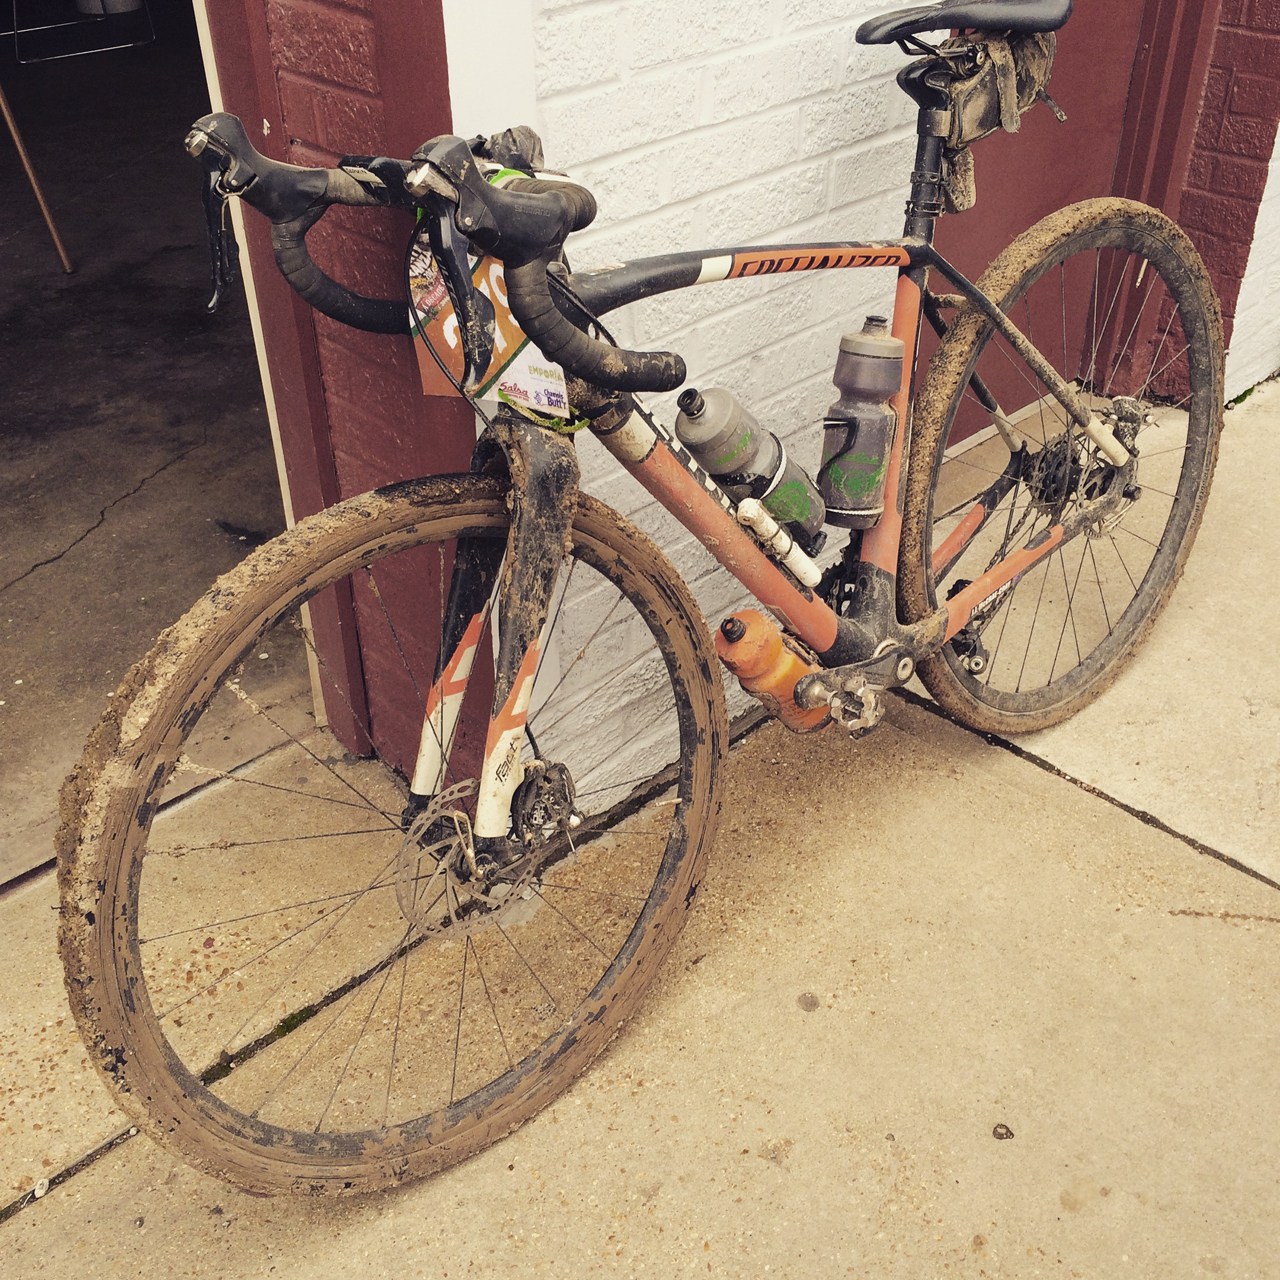 Pumpkin Butter. Even with a broken derailleur, nothing can diminish my love for this bike. I spent a while pulling the money trigger on this bike. I love it so much. (Yes, I work for Specialized. But I still have to weigh purchases with my bank account)